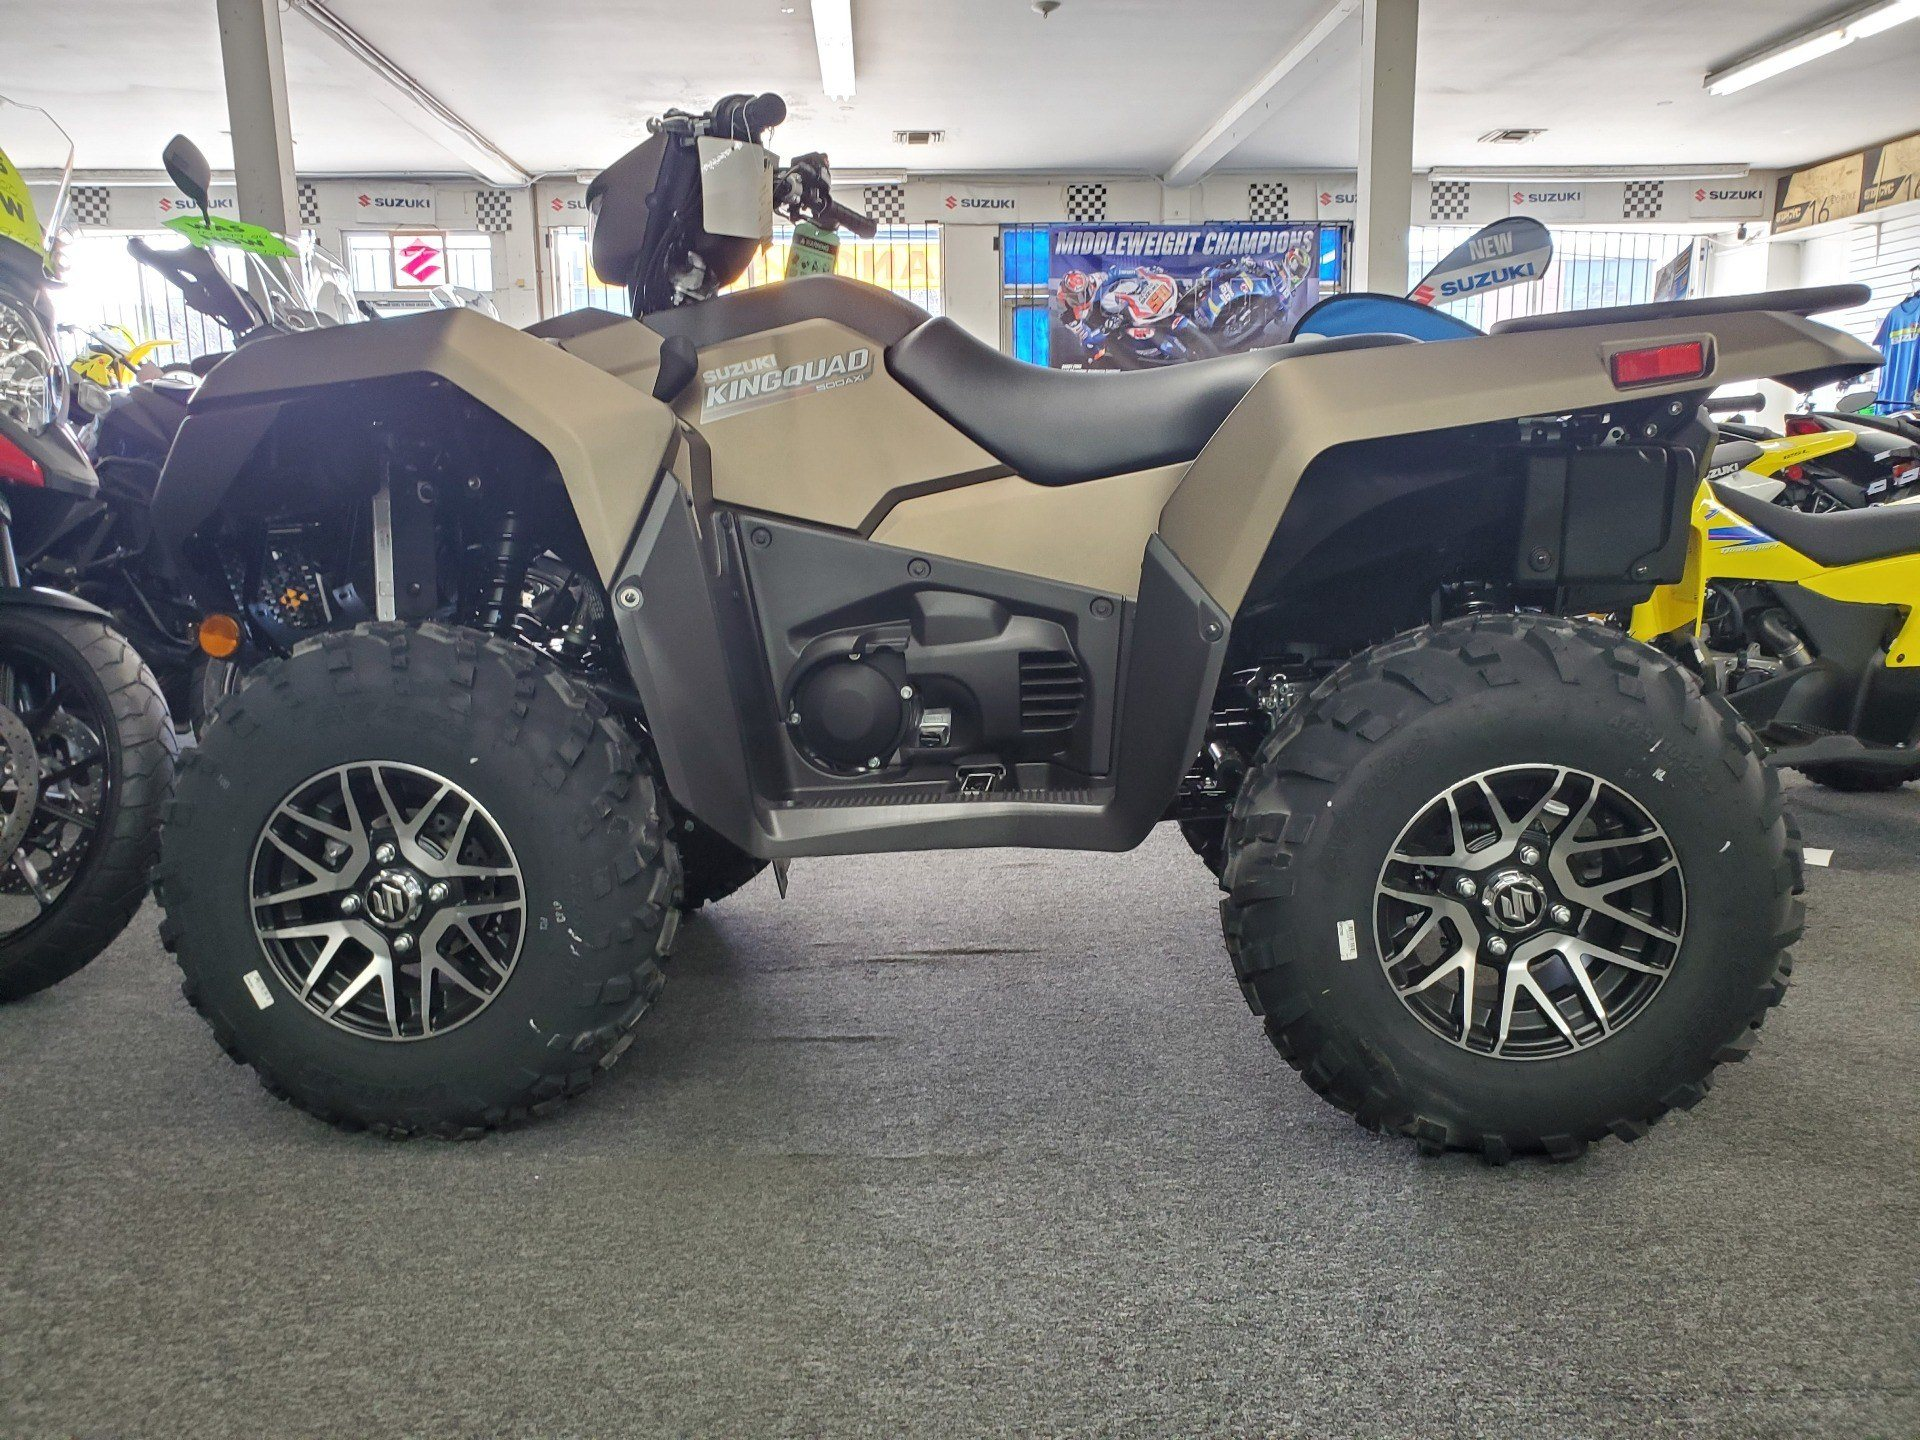 2020 Suzuki KINGQUAD in Van Nuys, California - Photo 1